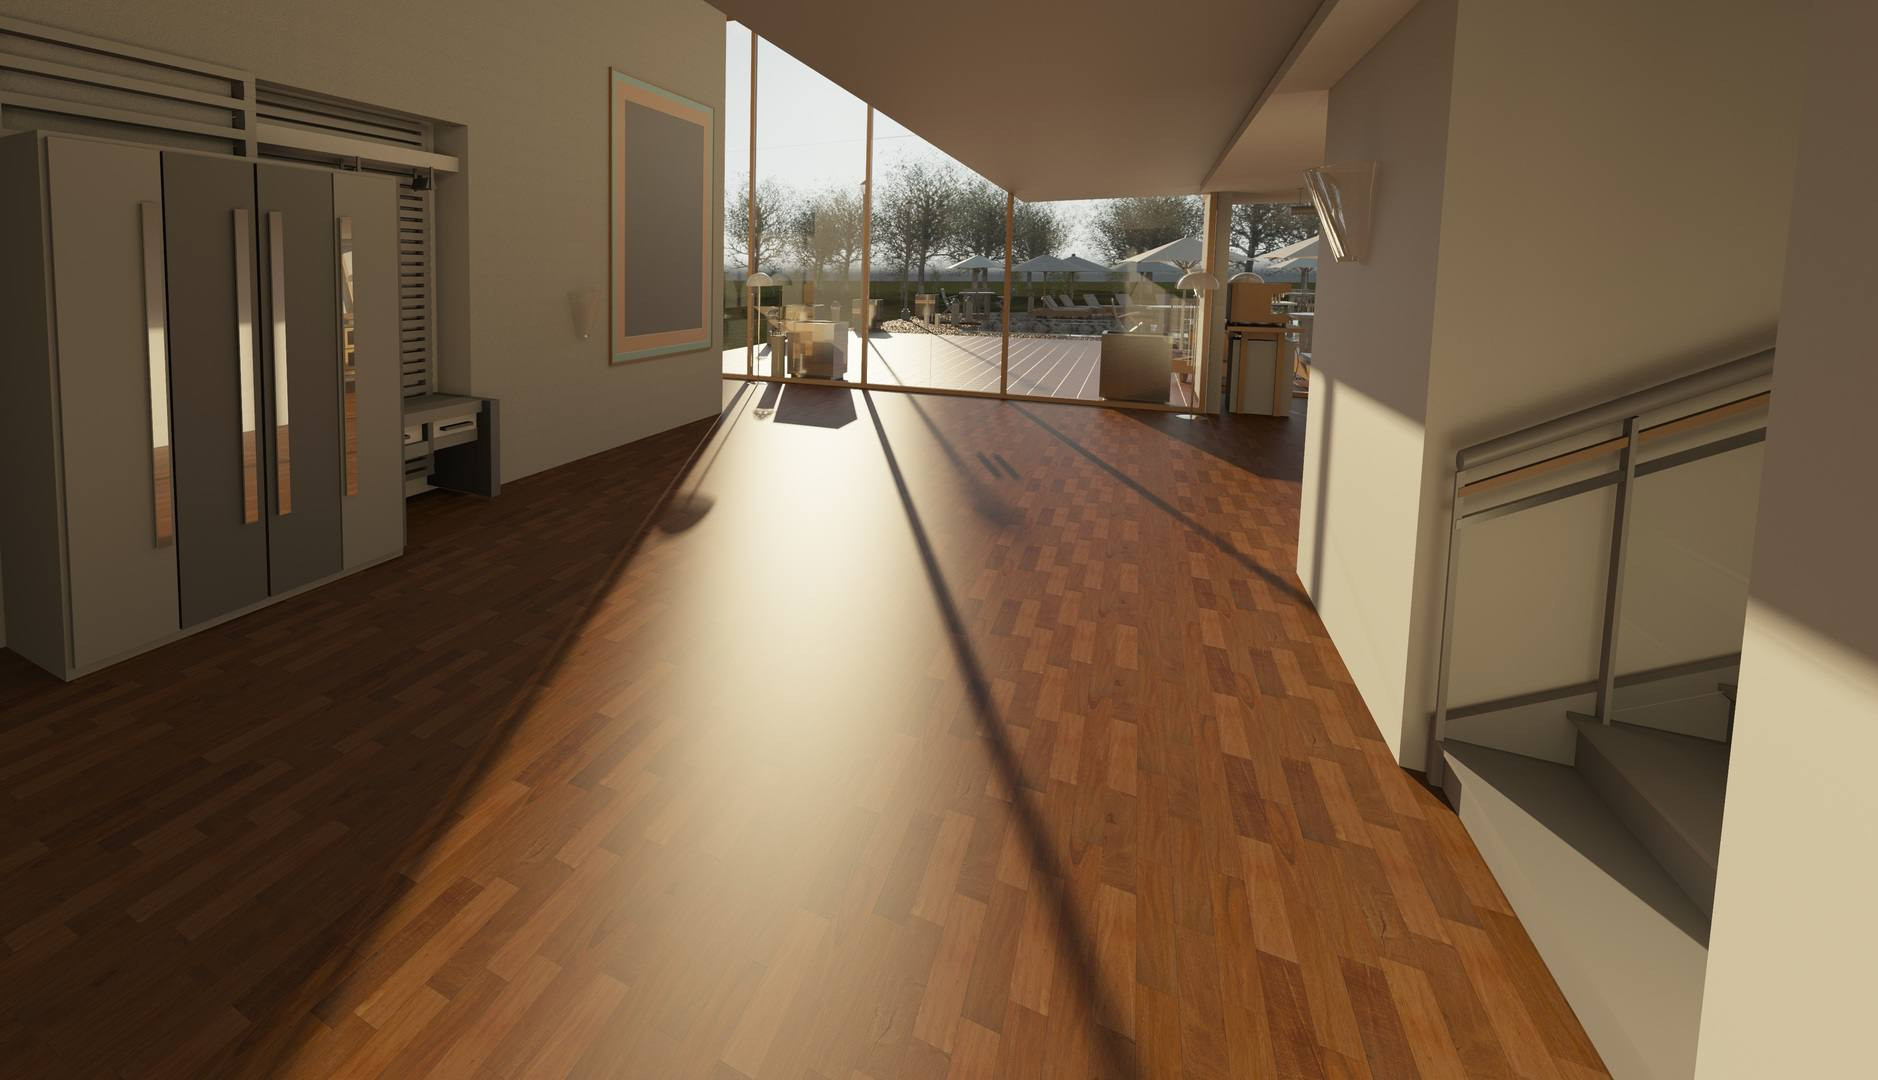 best hardwood floor filler of common flooring types currently used in renovation and building intended for architecture wood house floor interior window 917178 pxhere com 5ba27a2cc9e77c00503b27b9